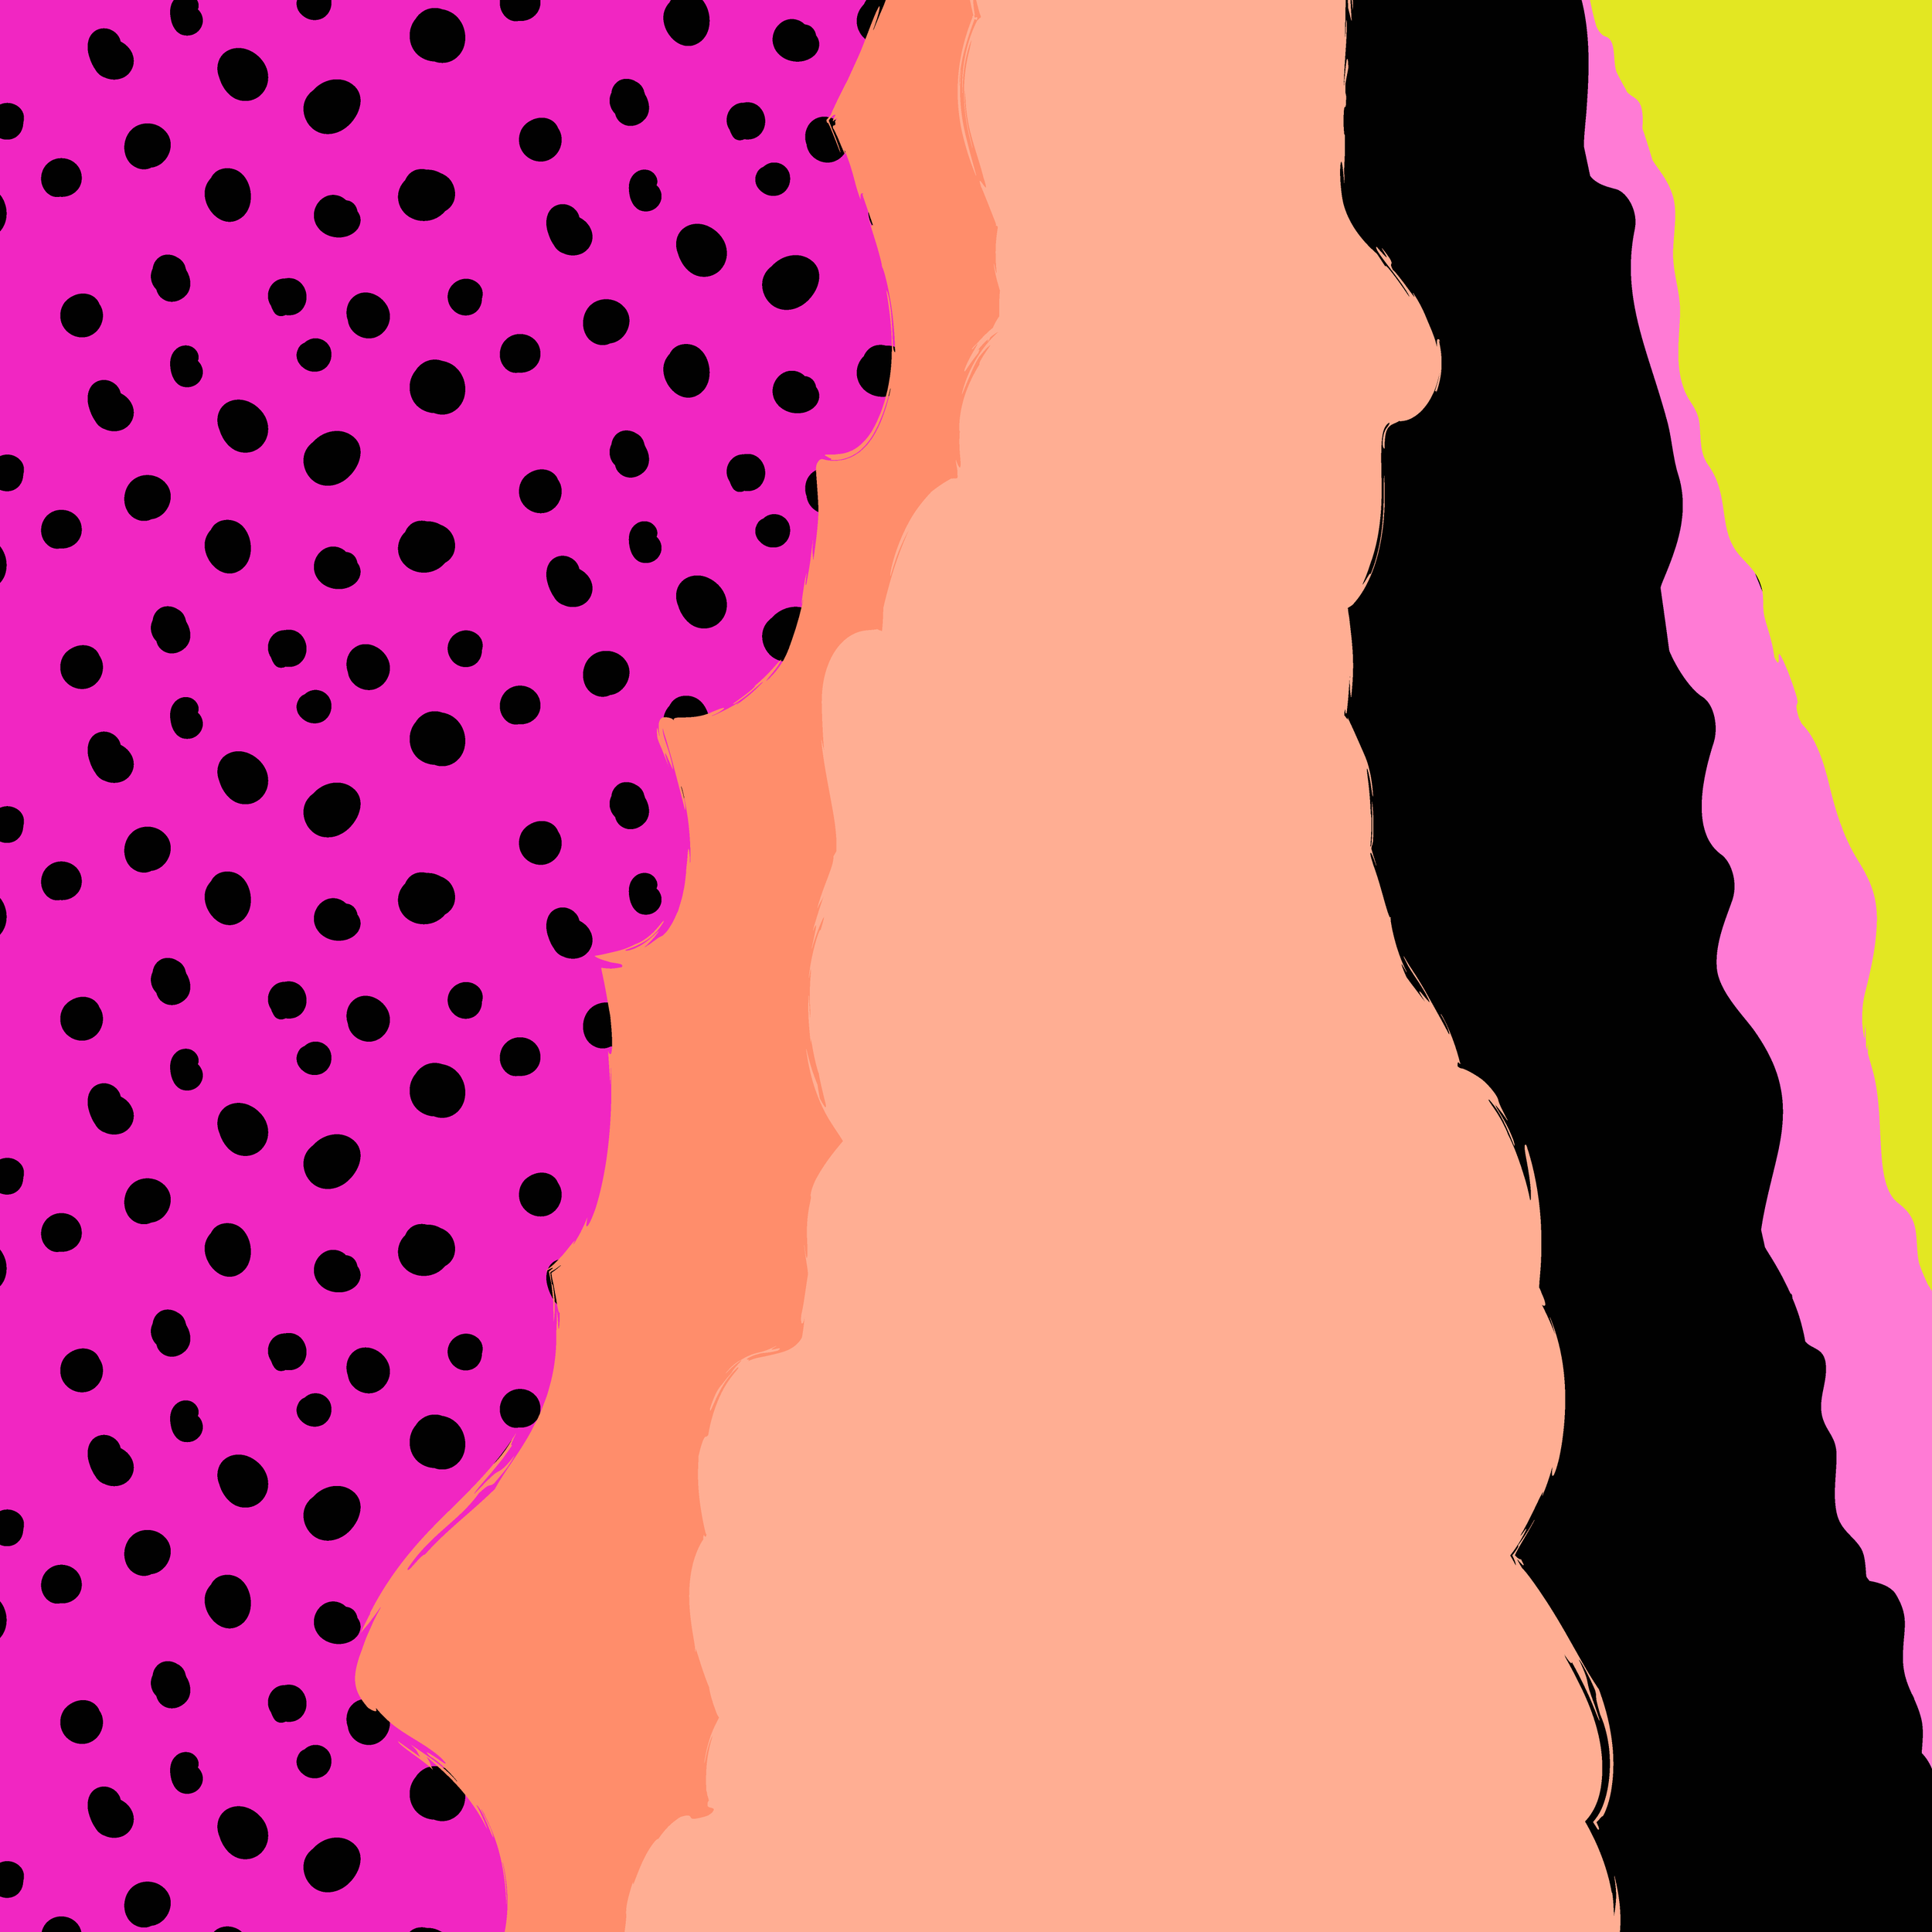 Abstract Pattern_03_300 dpi.png